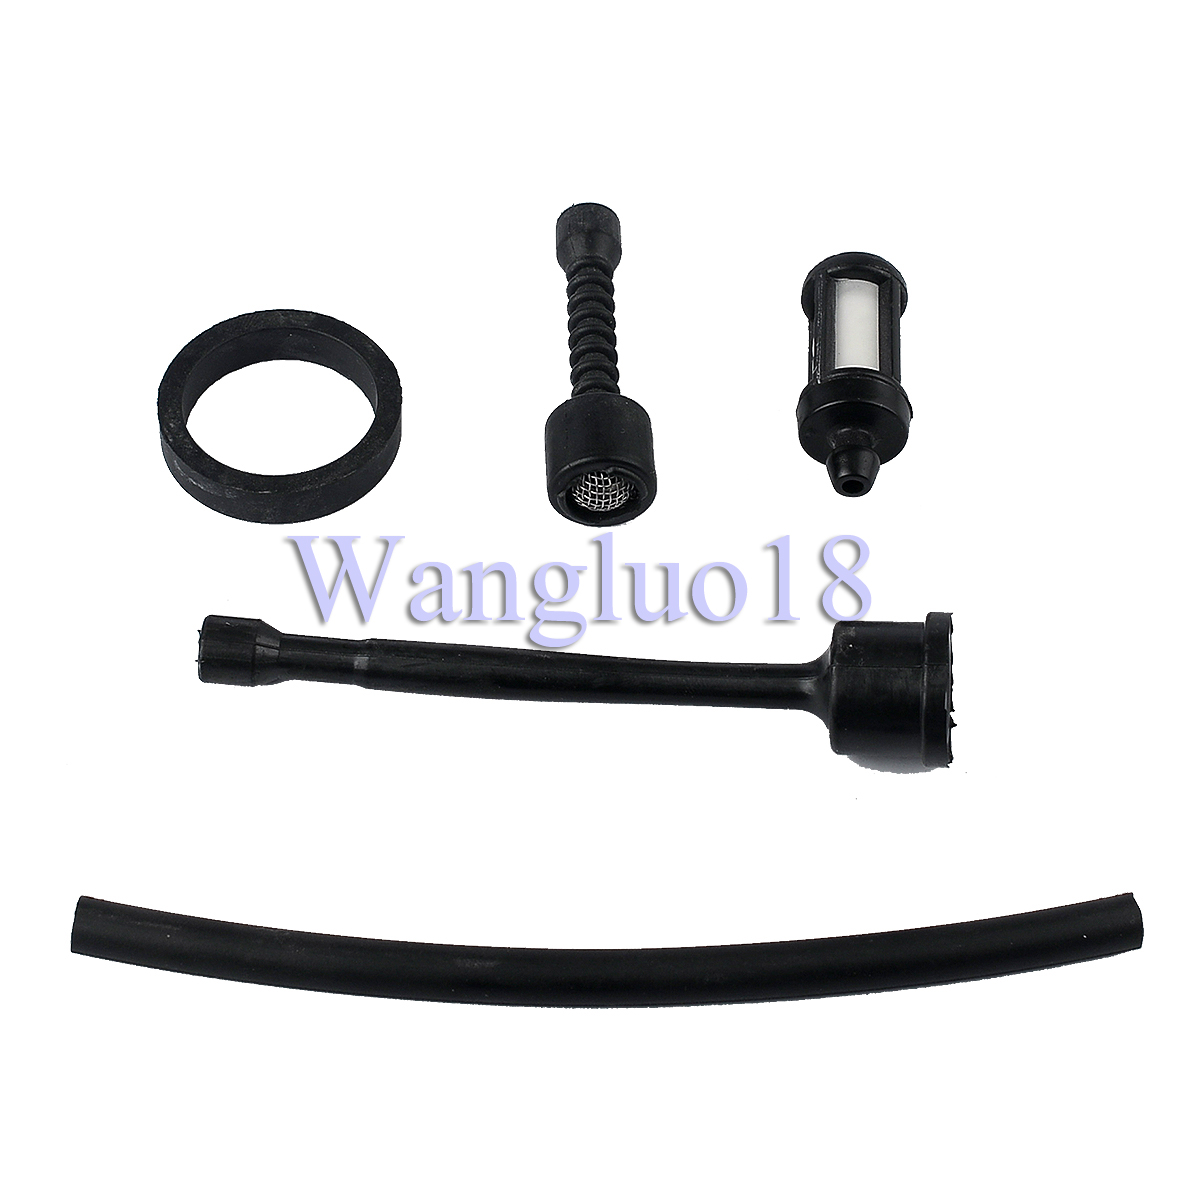 Fuel Oil Line Filter Intake Manifold Rubber Gasket For Stihl 070 090 My Chainsaw There Are Replacements The Repair Set Can Replace